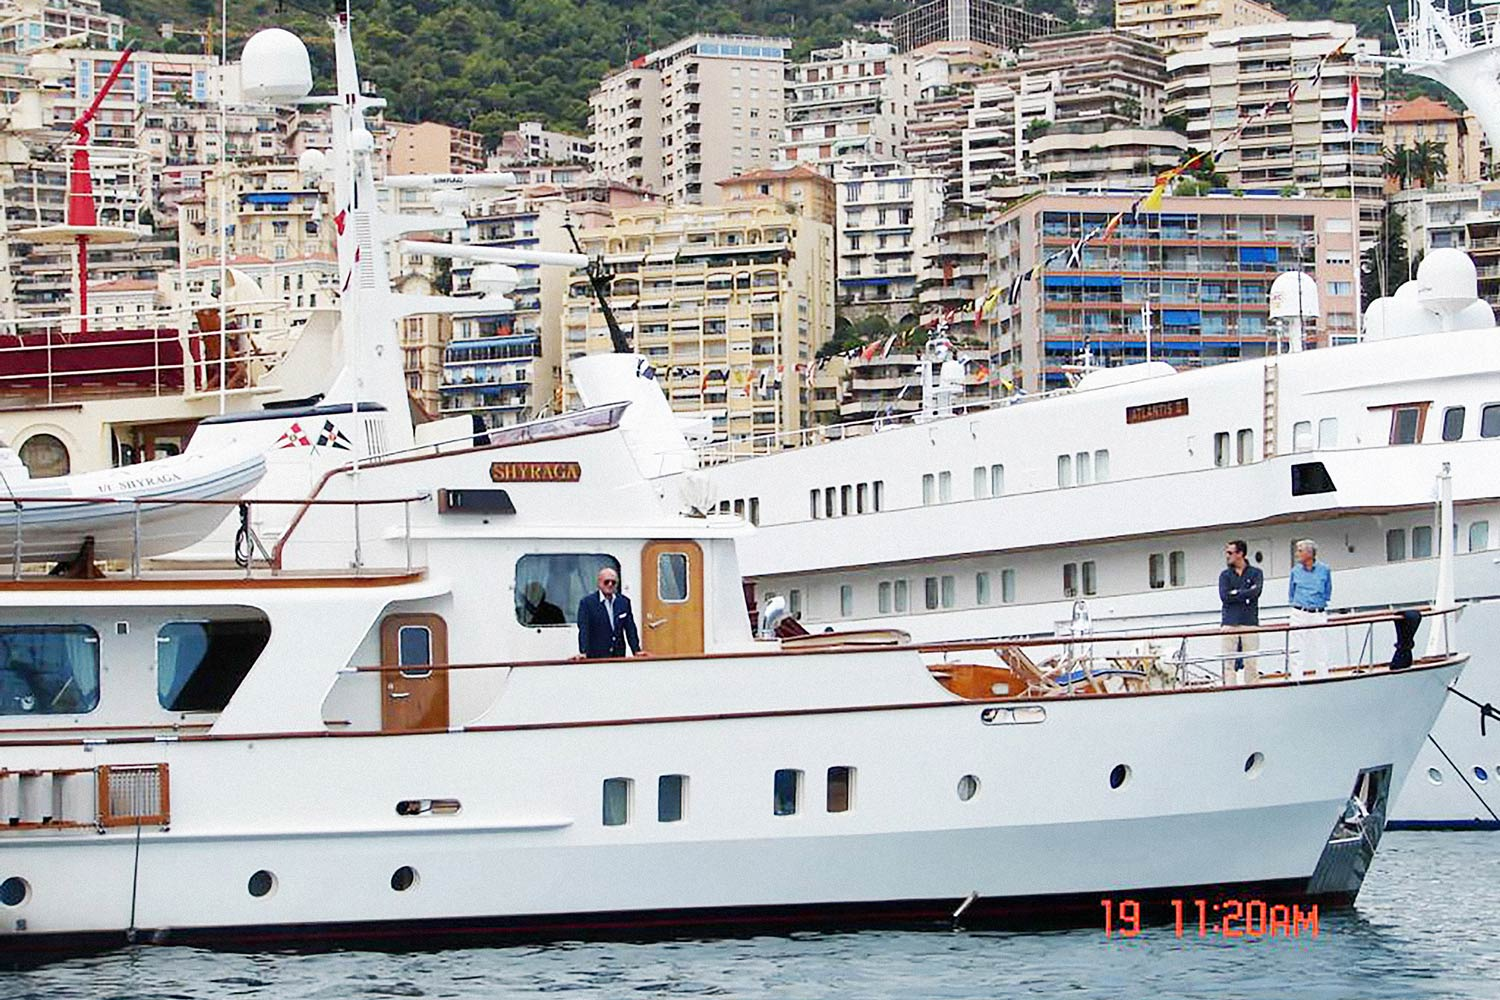 Marcello Fratini on his yatch